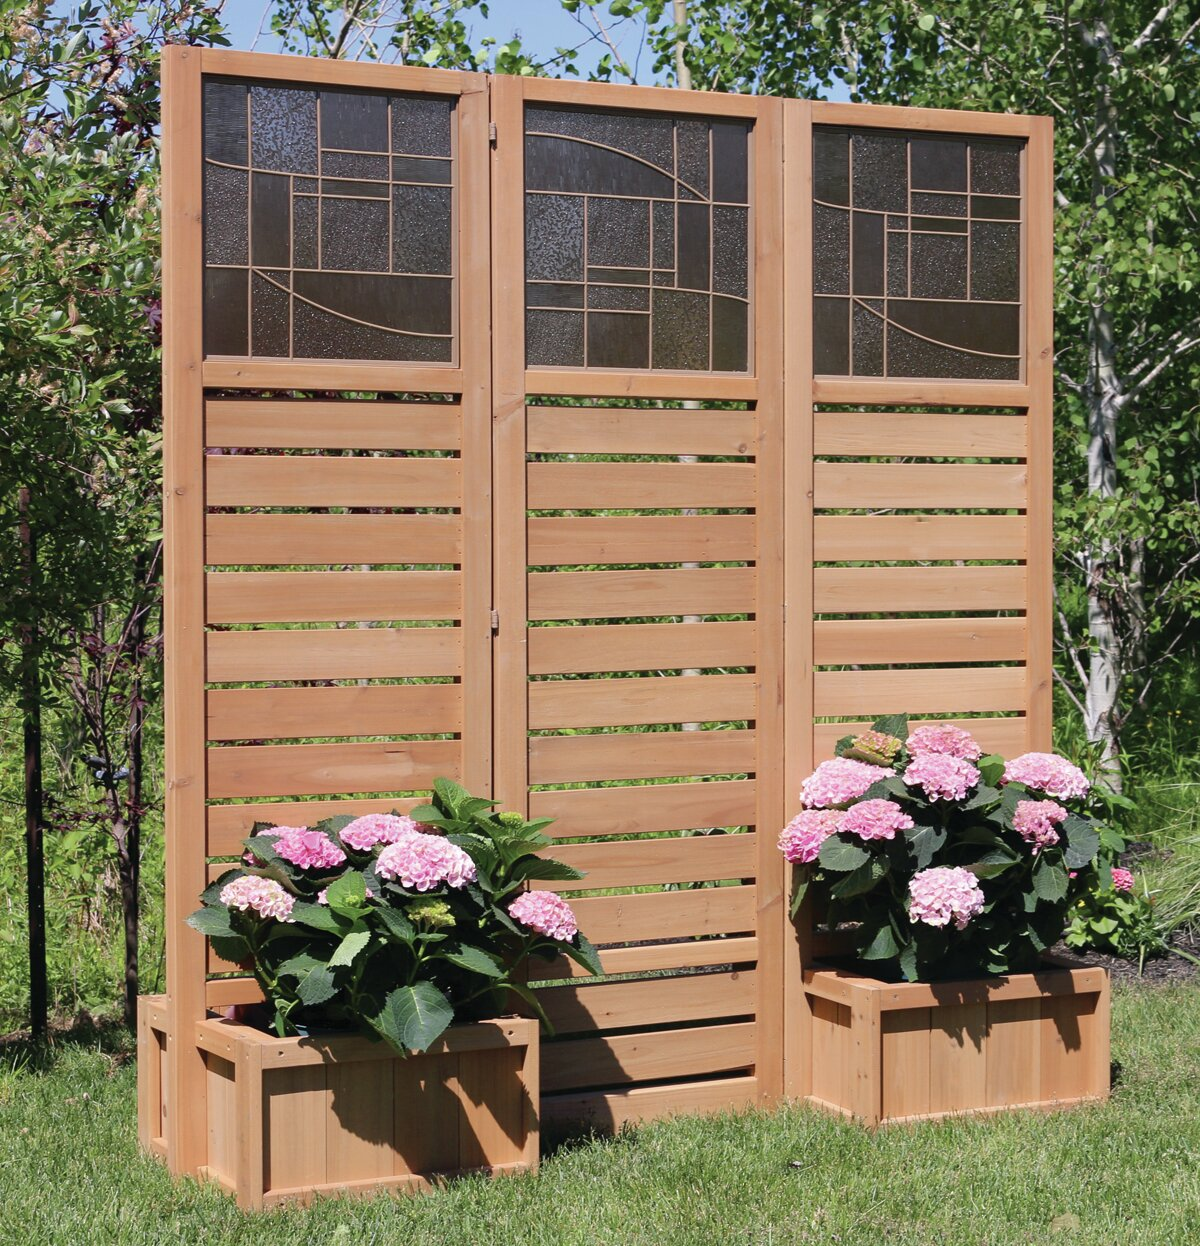 Yardistry langdon privacy screen with planters ebay for Buy outdoor privacy screen